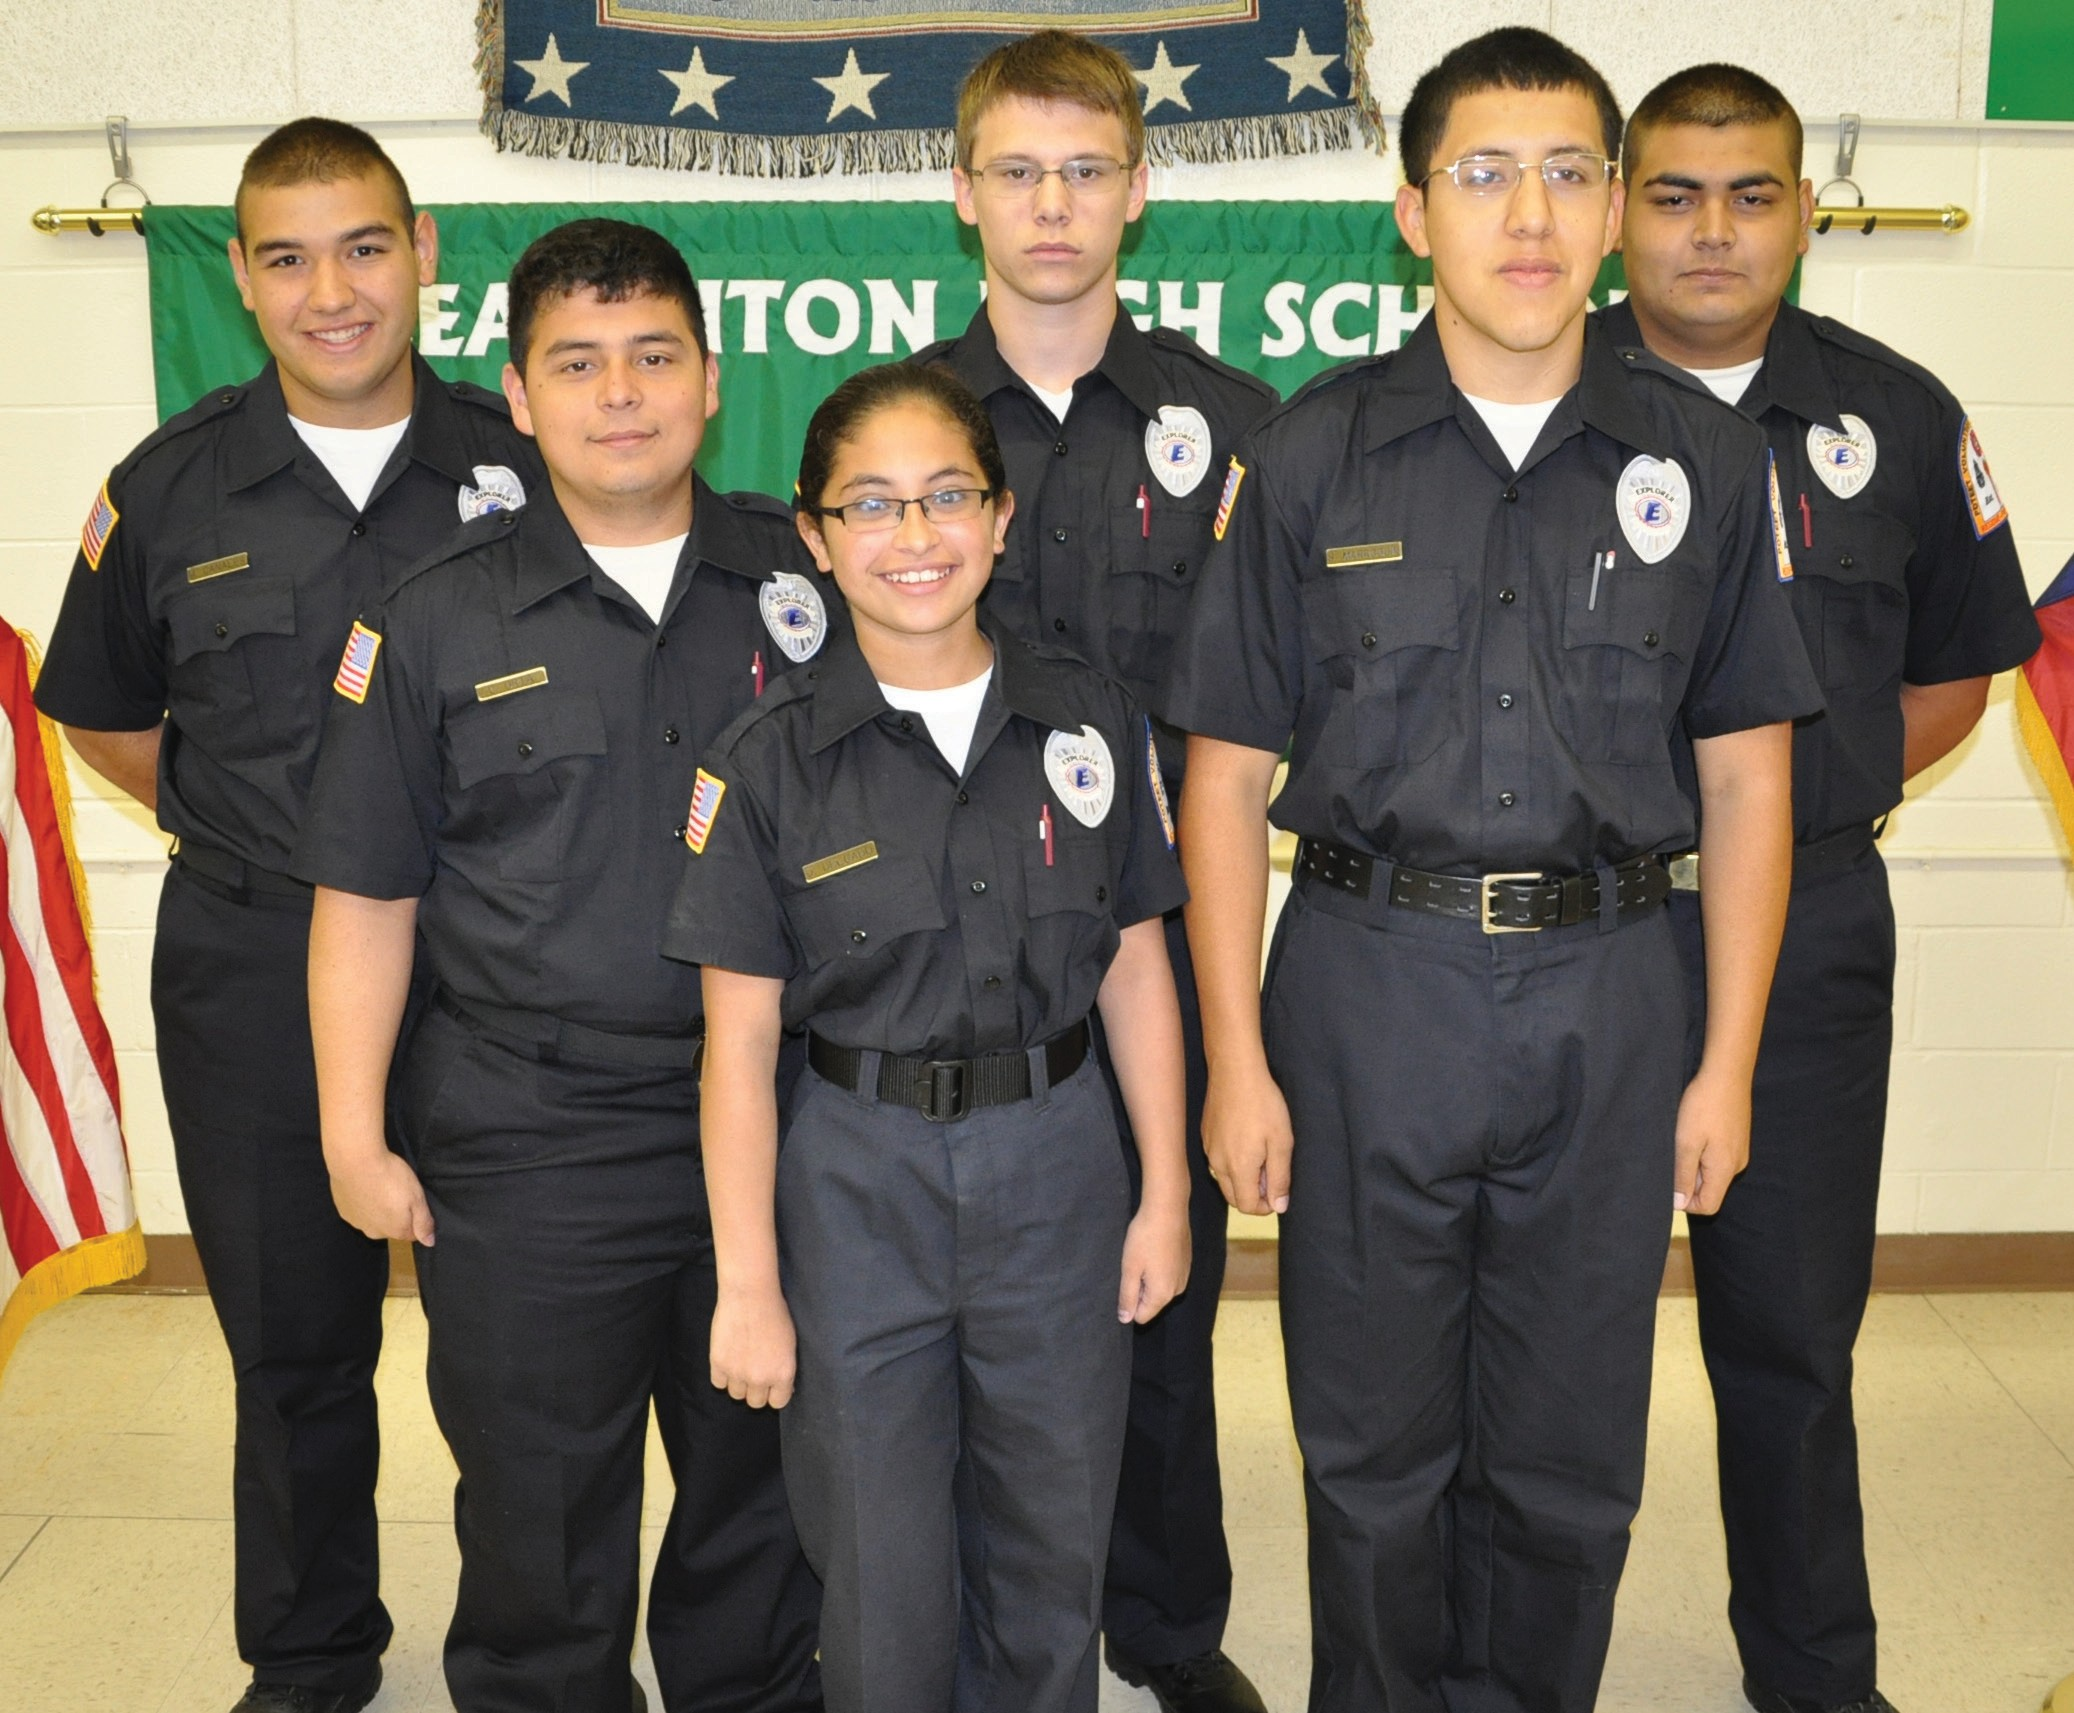 Poteet 'Explorers' Firefighters earn trophies and badges